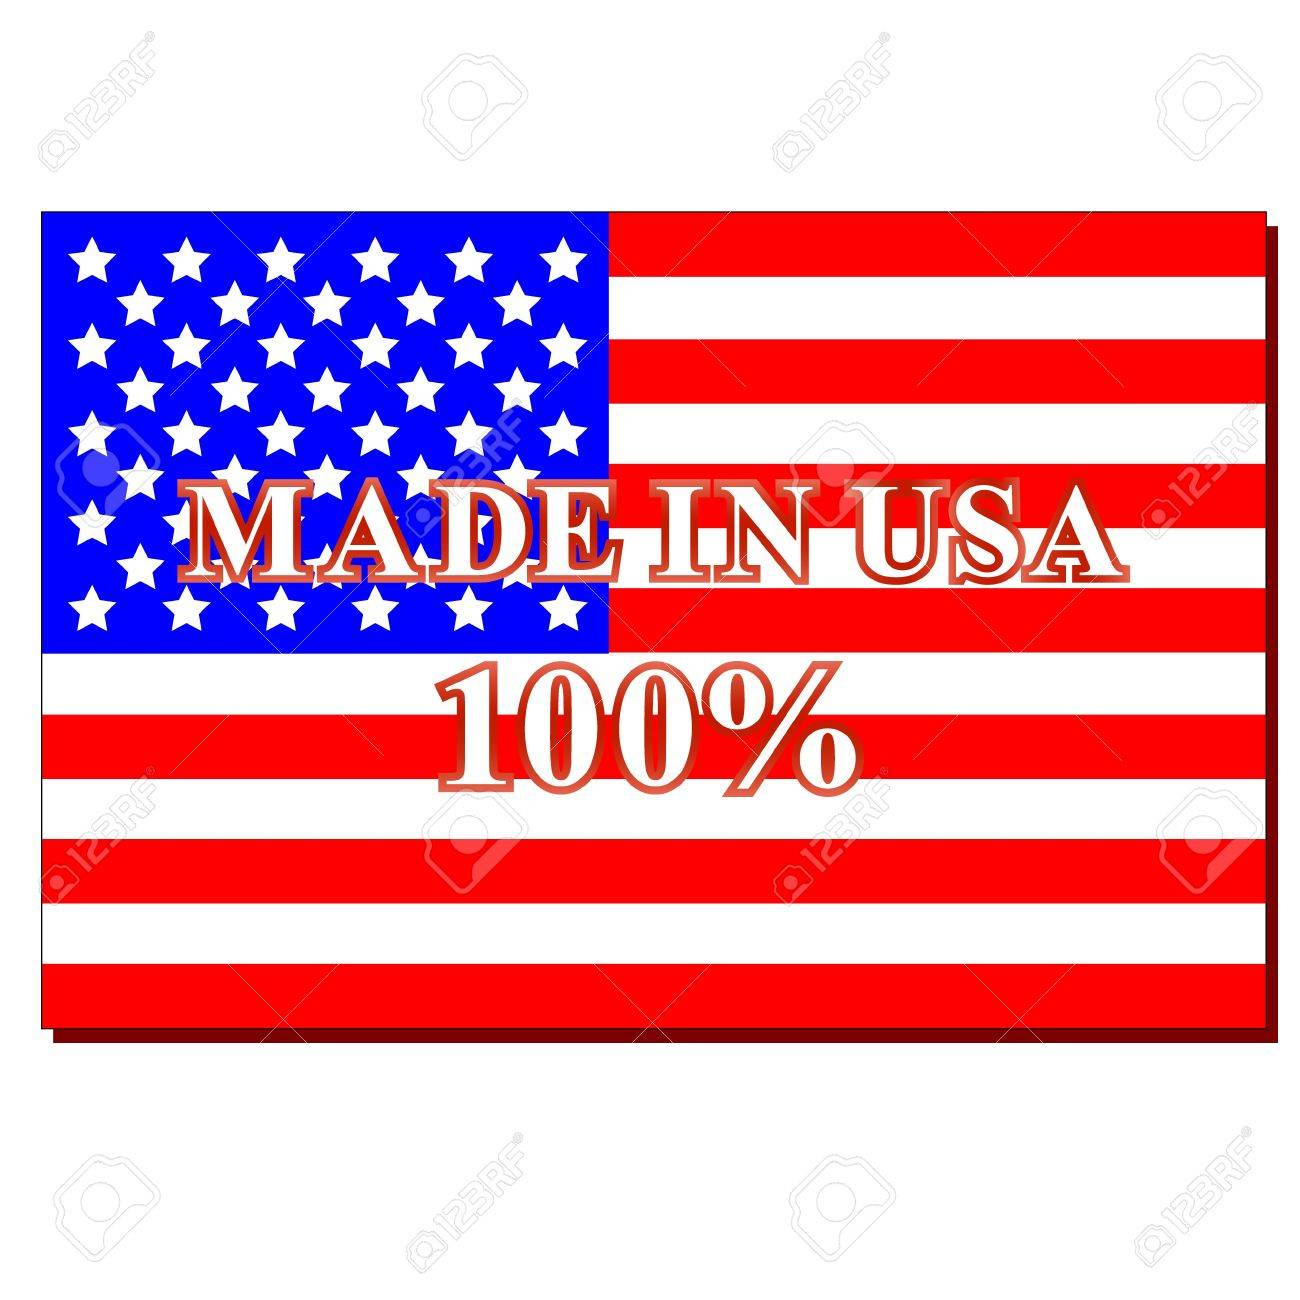 American symbol and text made in usa on a white background Stock Vector - 13149074